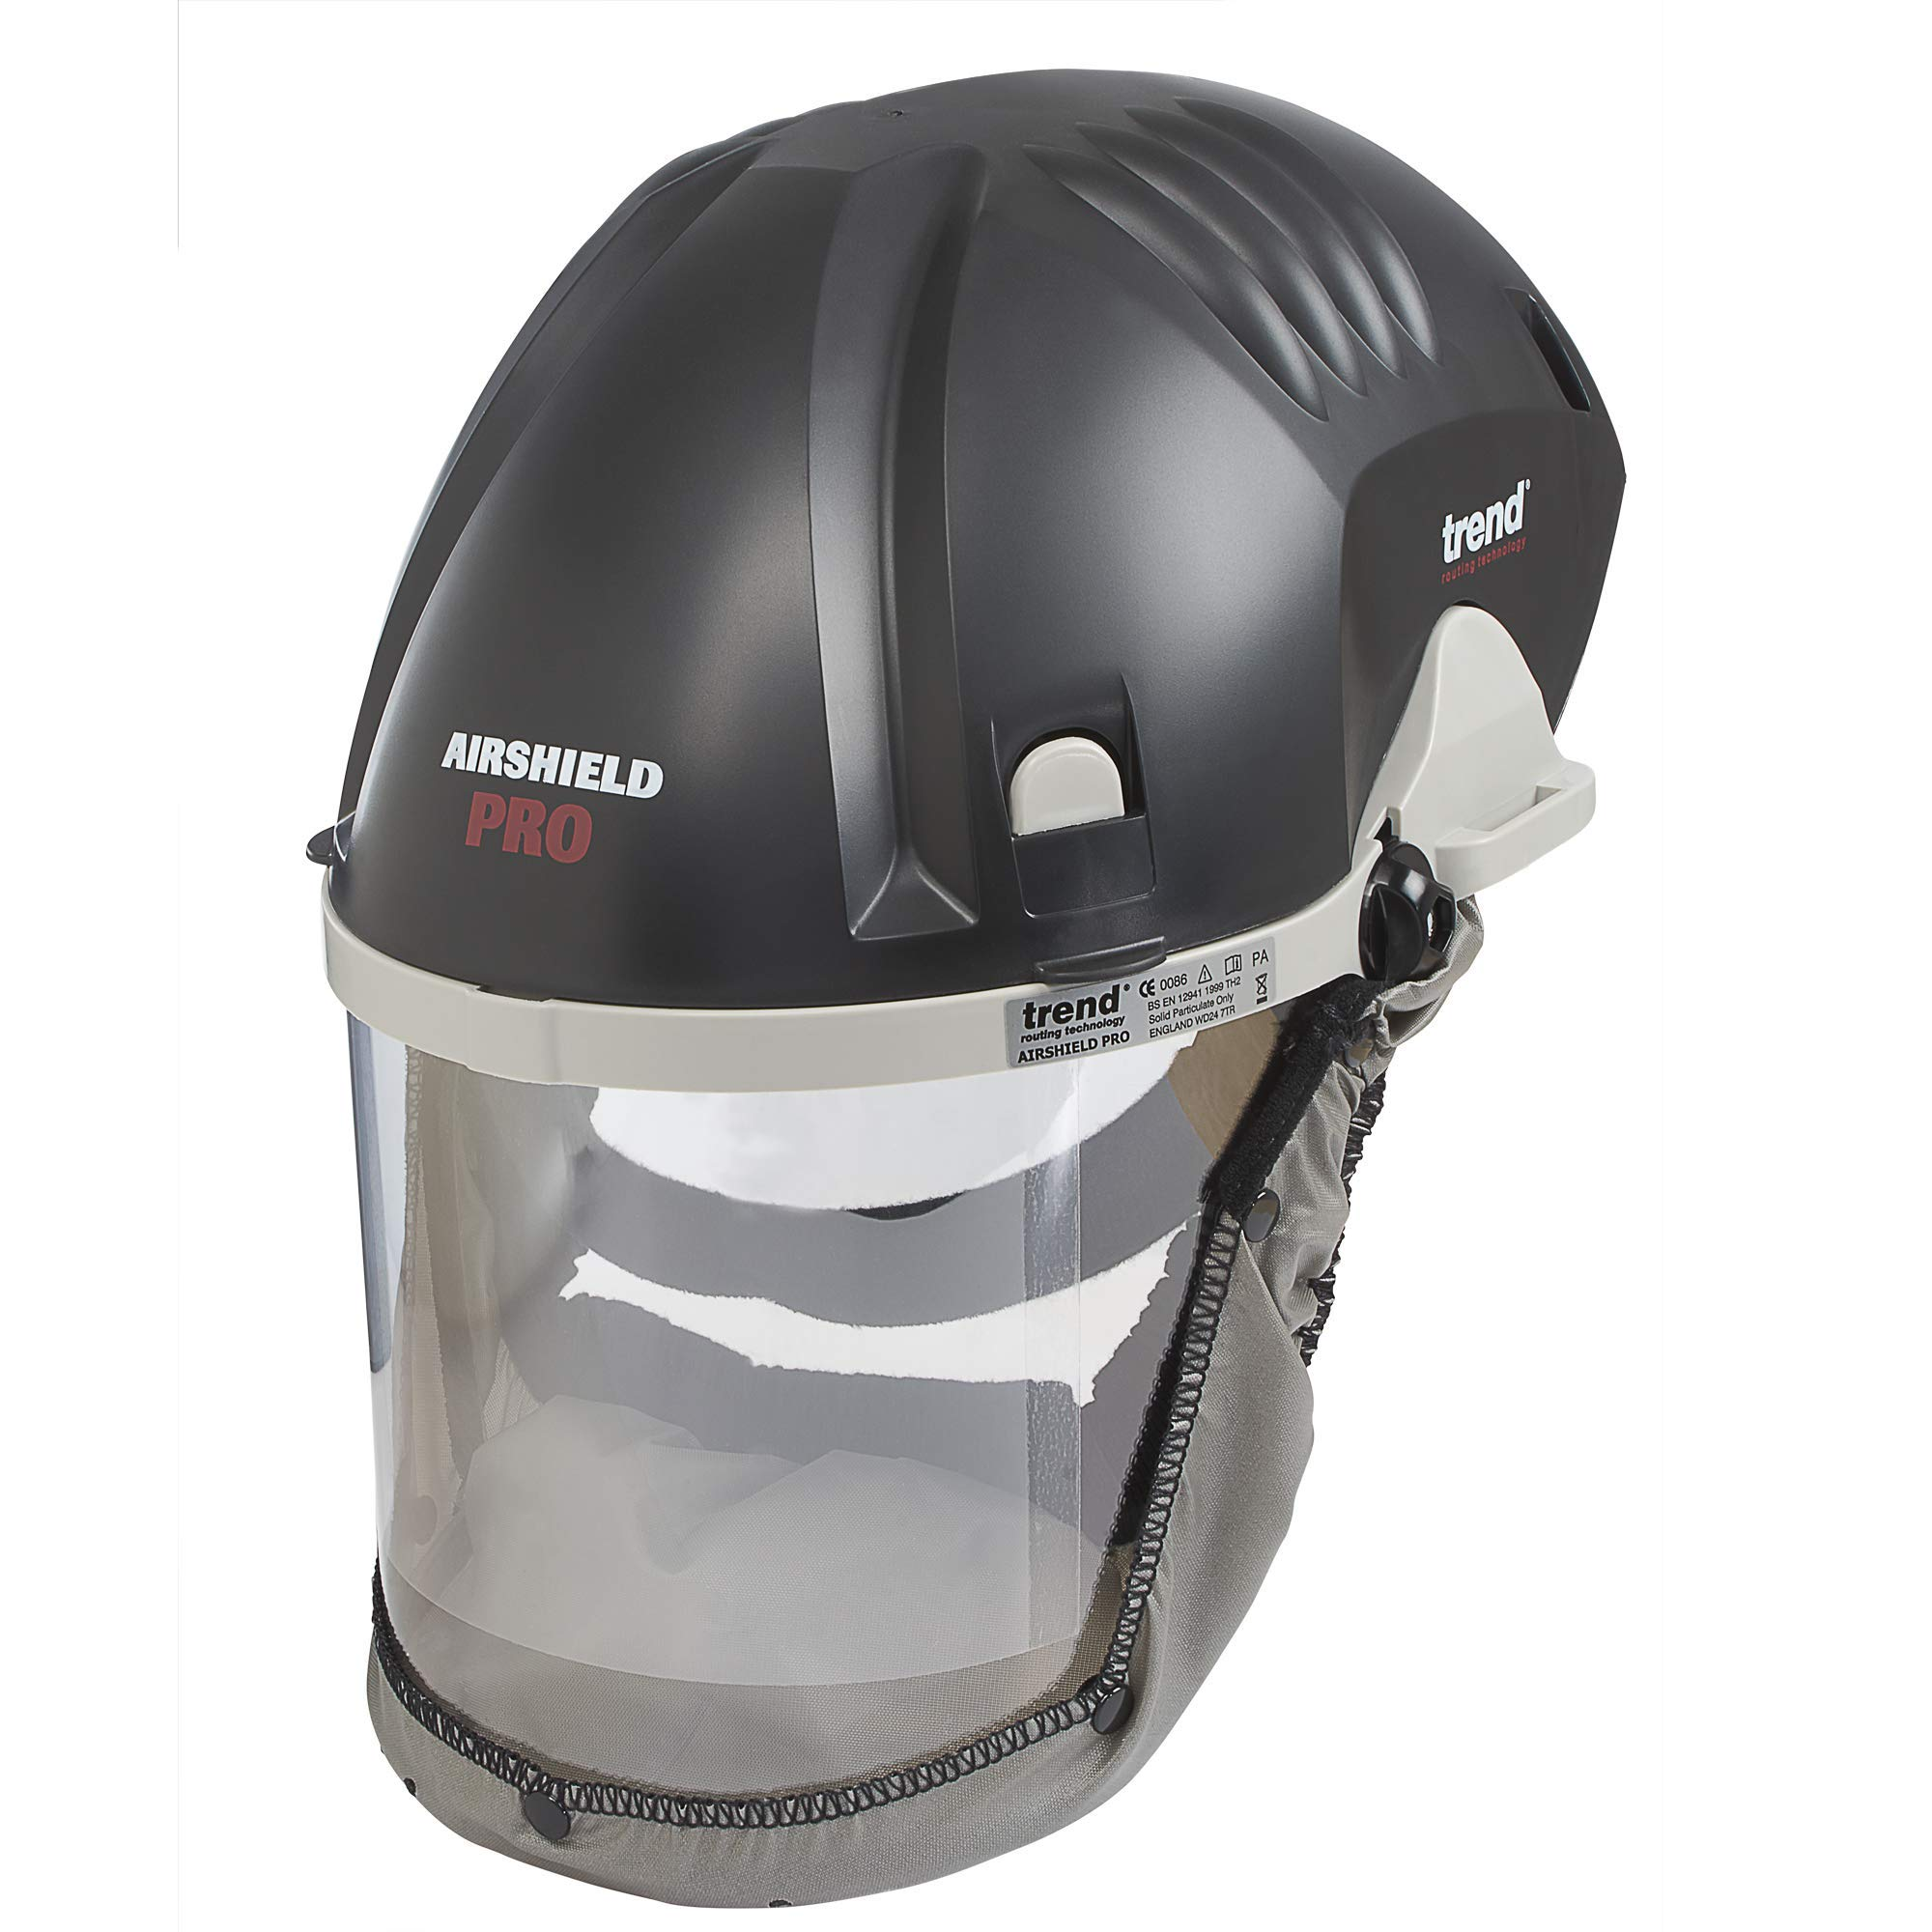 TREND AIR/PRO Airshield and Faceshield Dust Protector (Renewed)